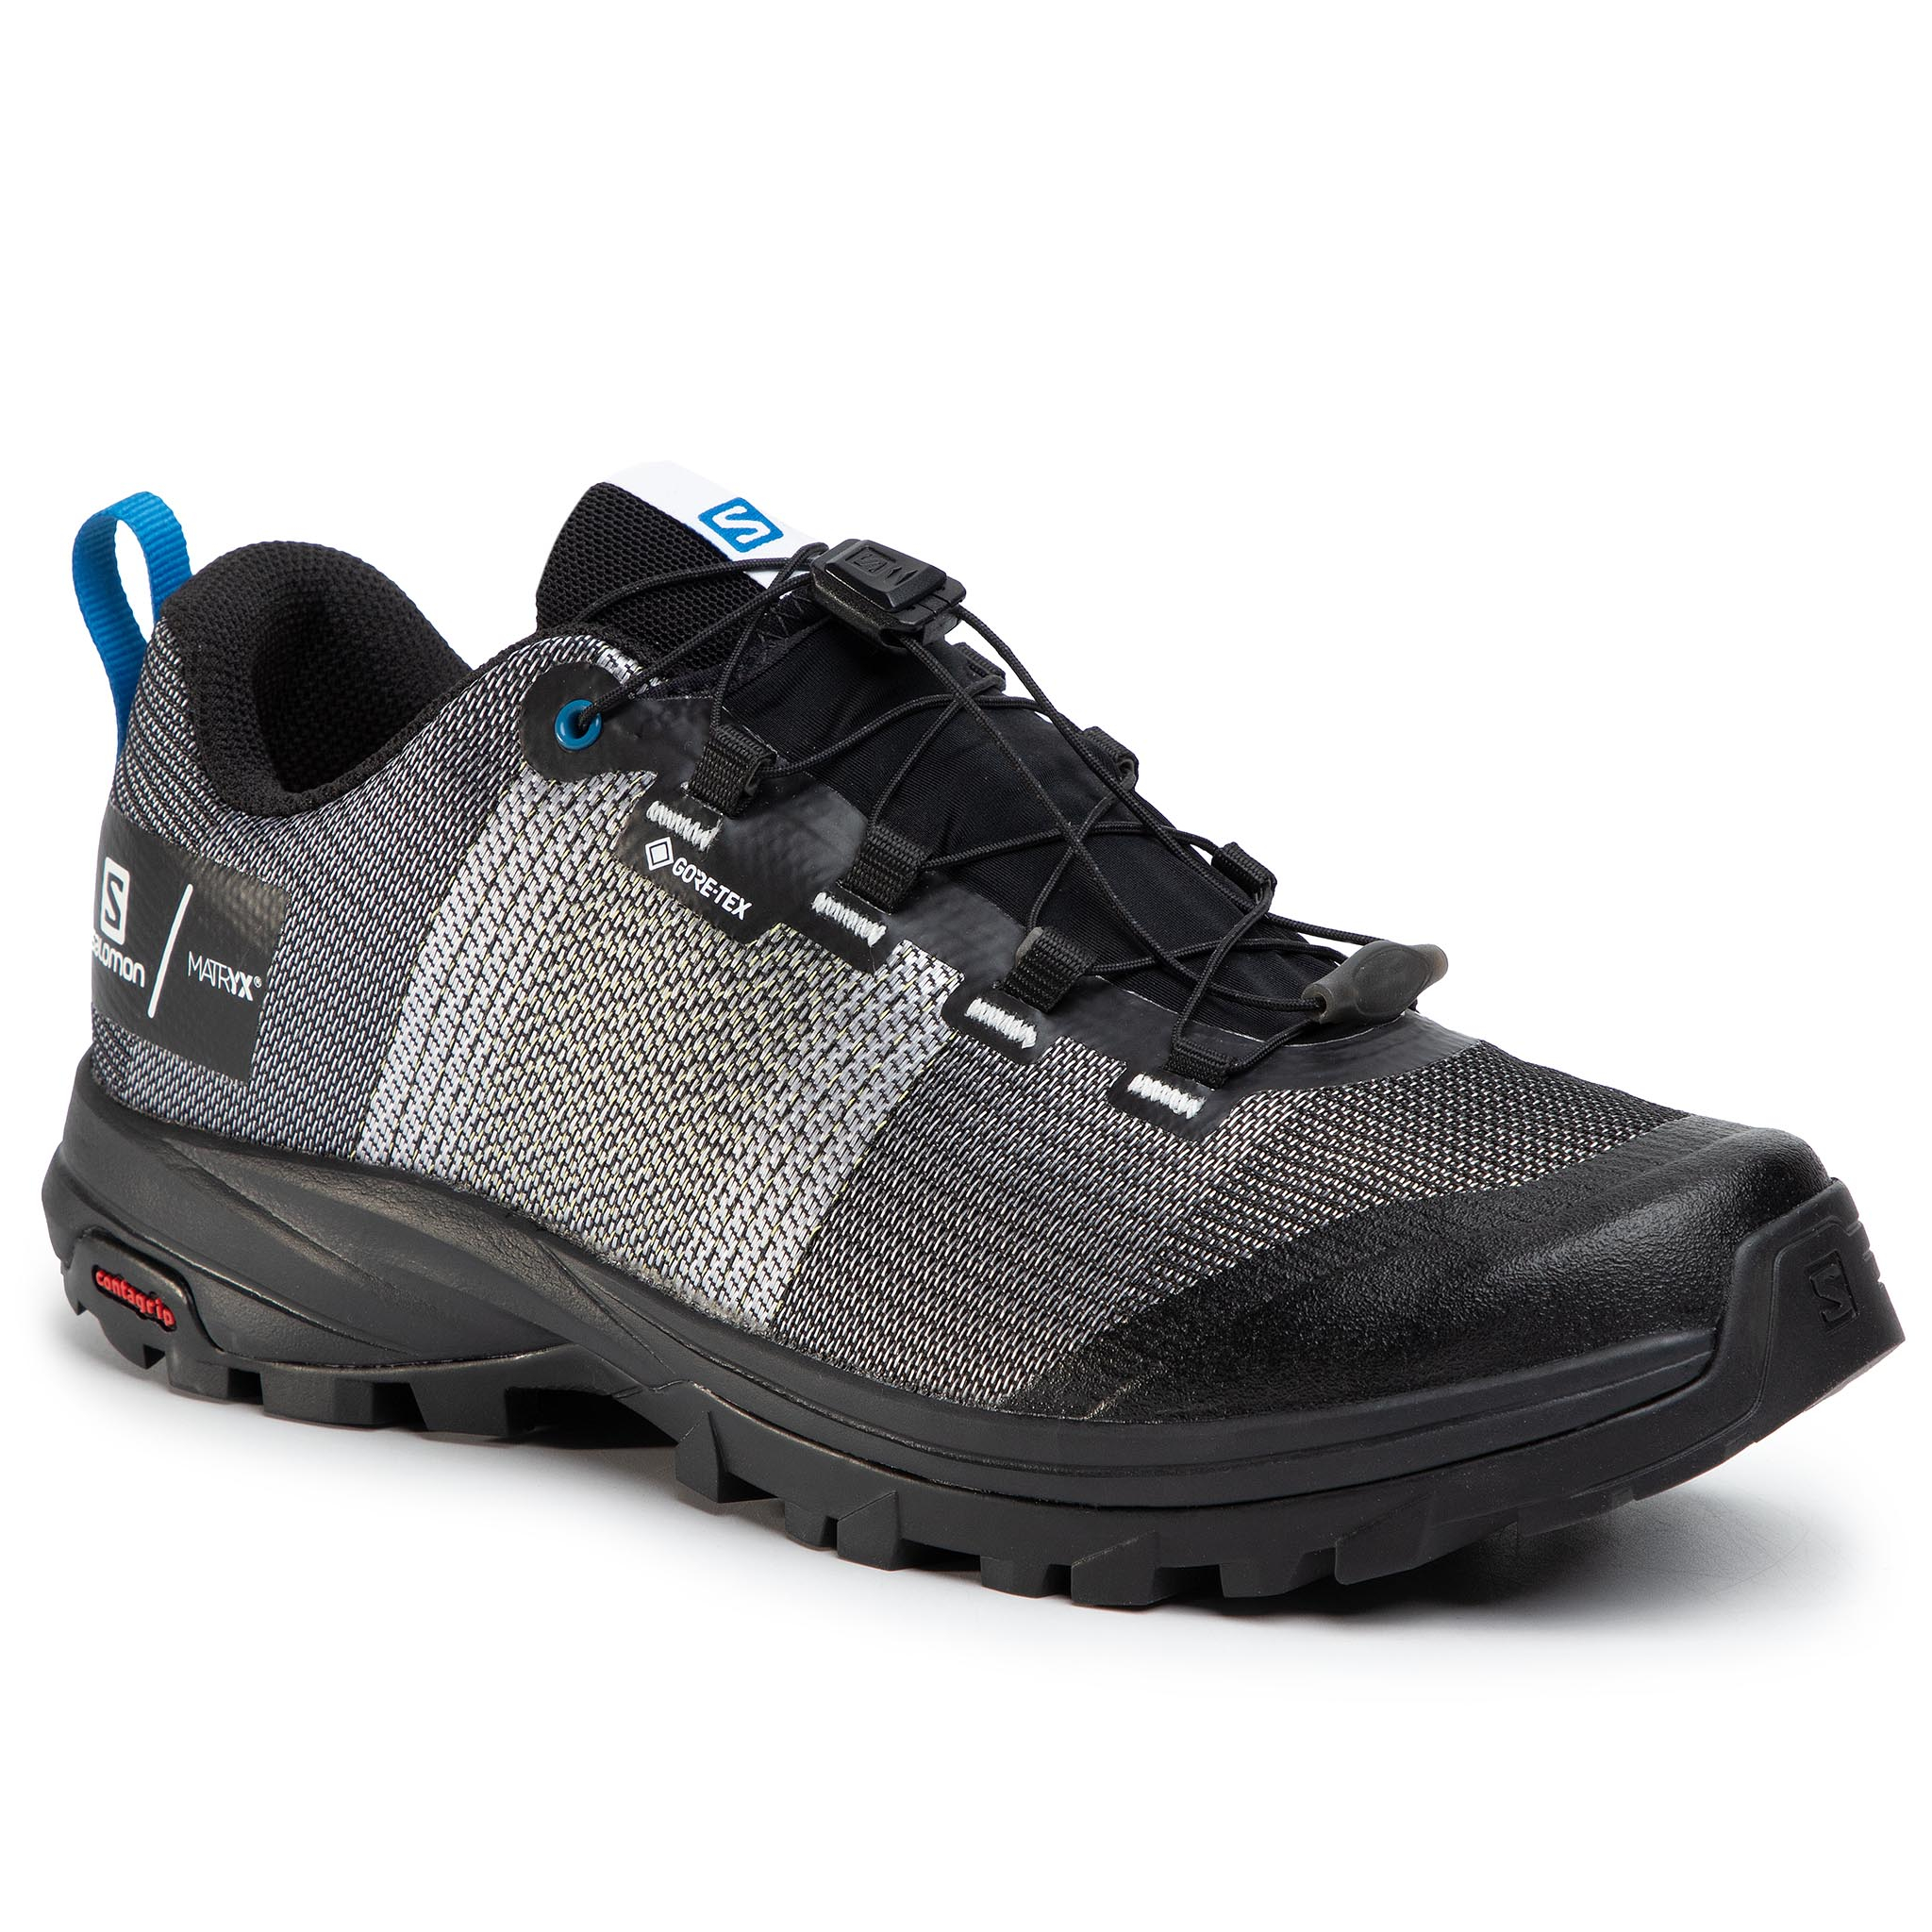 Trekkings Salomon - Out Gtx/Pro Gore-Tex 408677 White/Black/Imperial Blue imagine epantofi.ro 2021